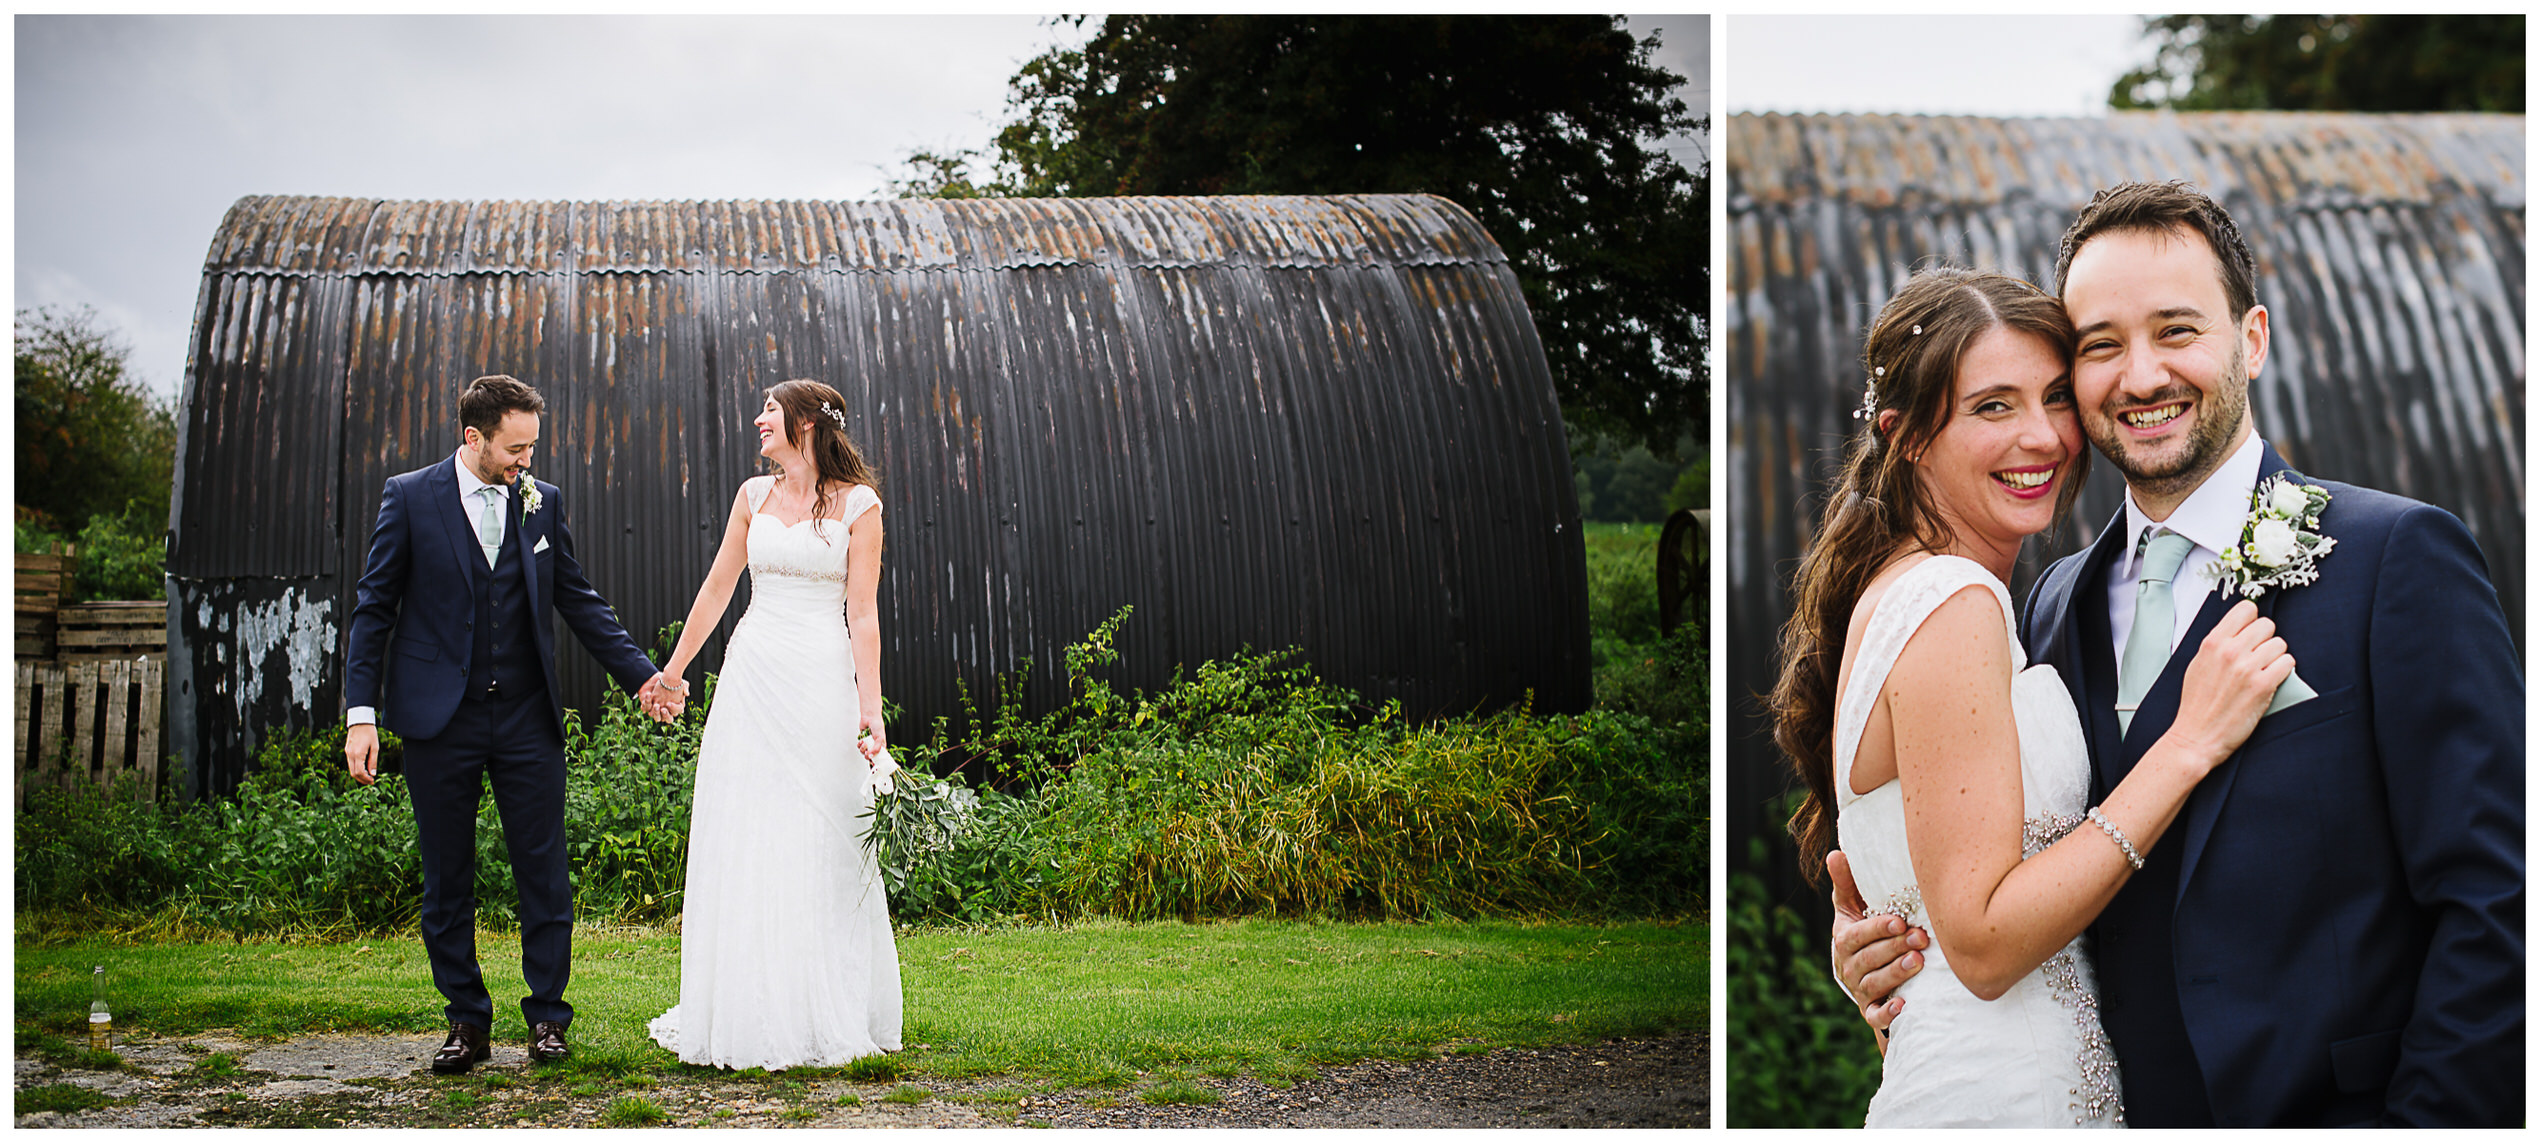 Milling Barn wedding couple pose in front of the old pig sheds